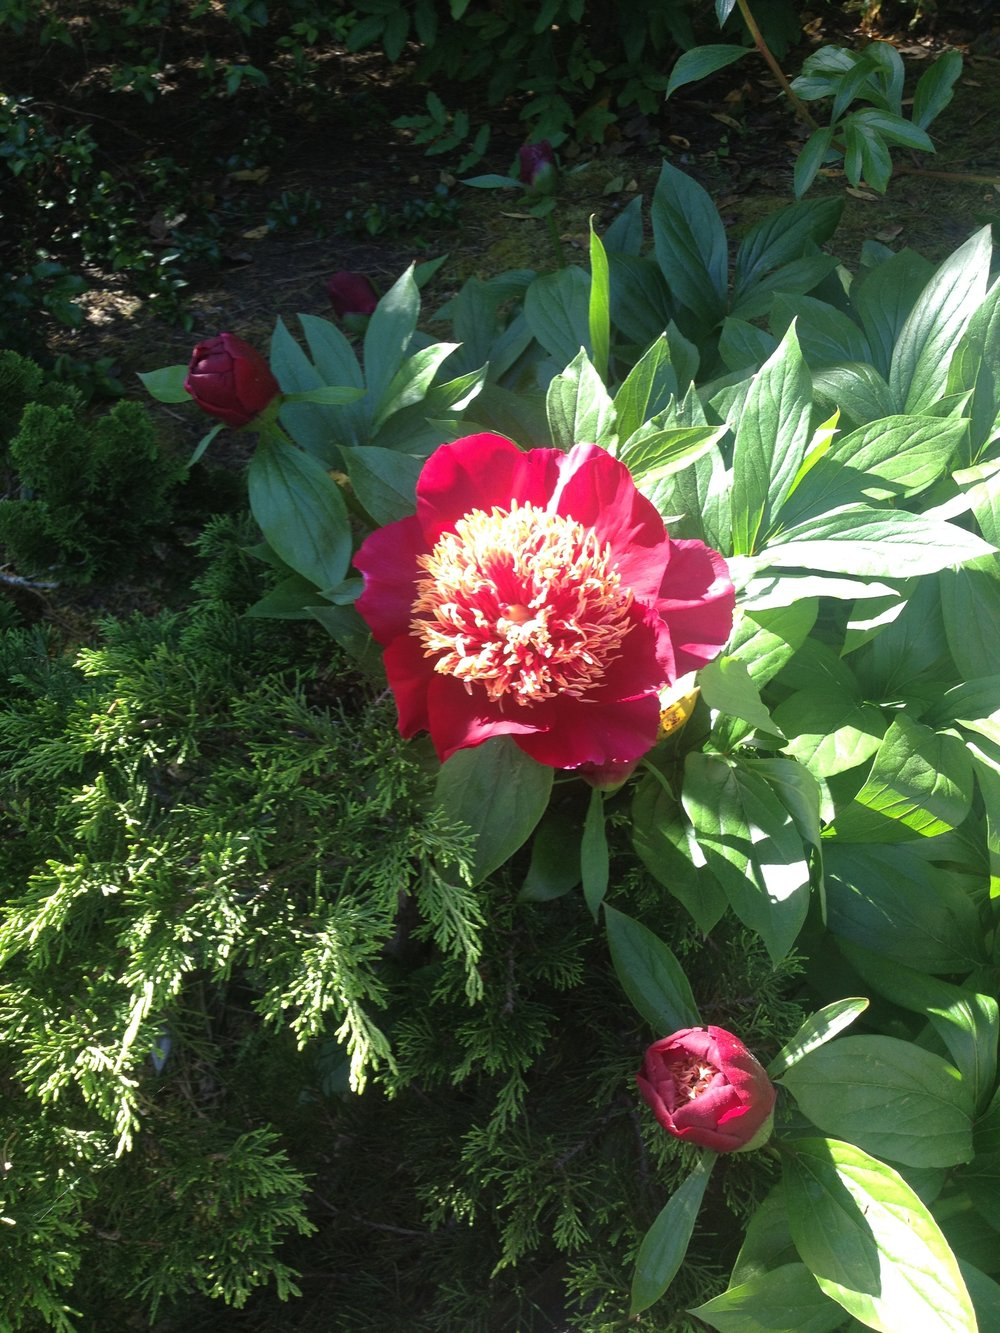 Peony-teaching me about the beauty of being open to the journey.